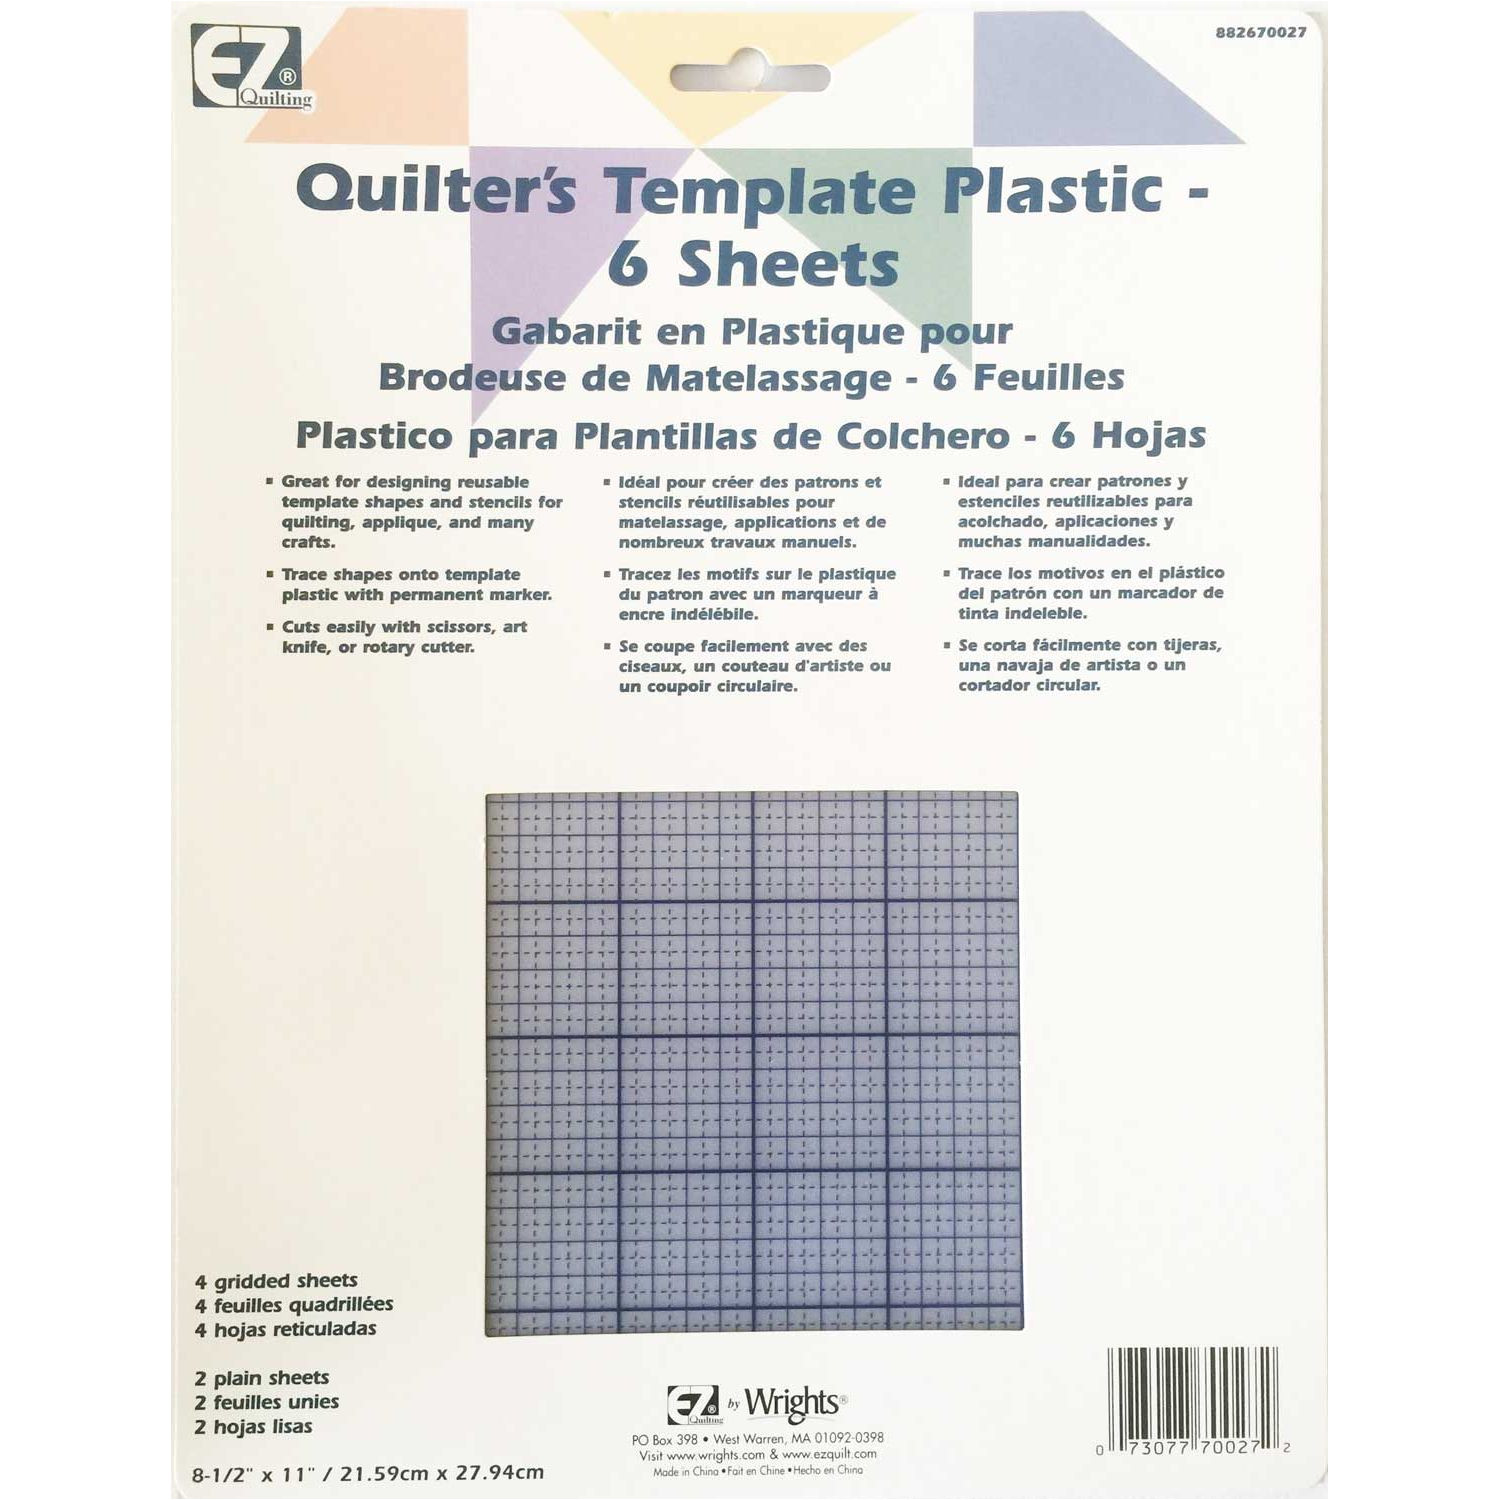 ez quilting quilters template plastic assortment 6 sheets